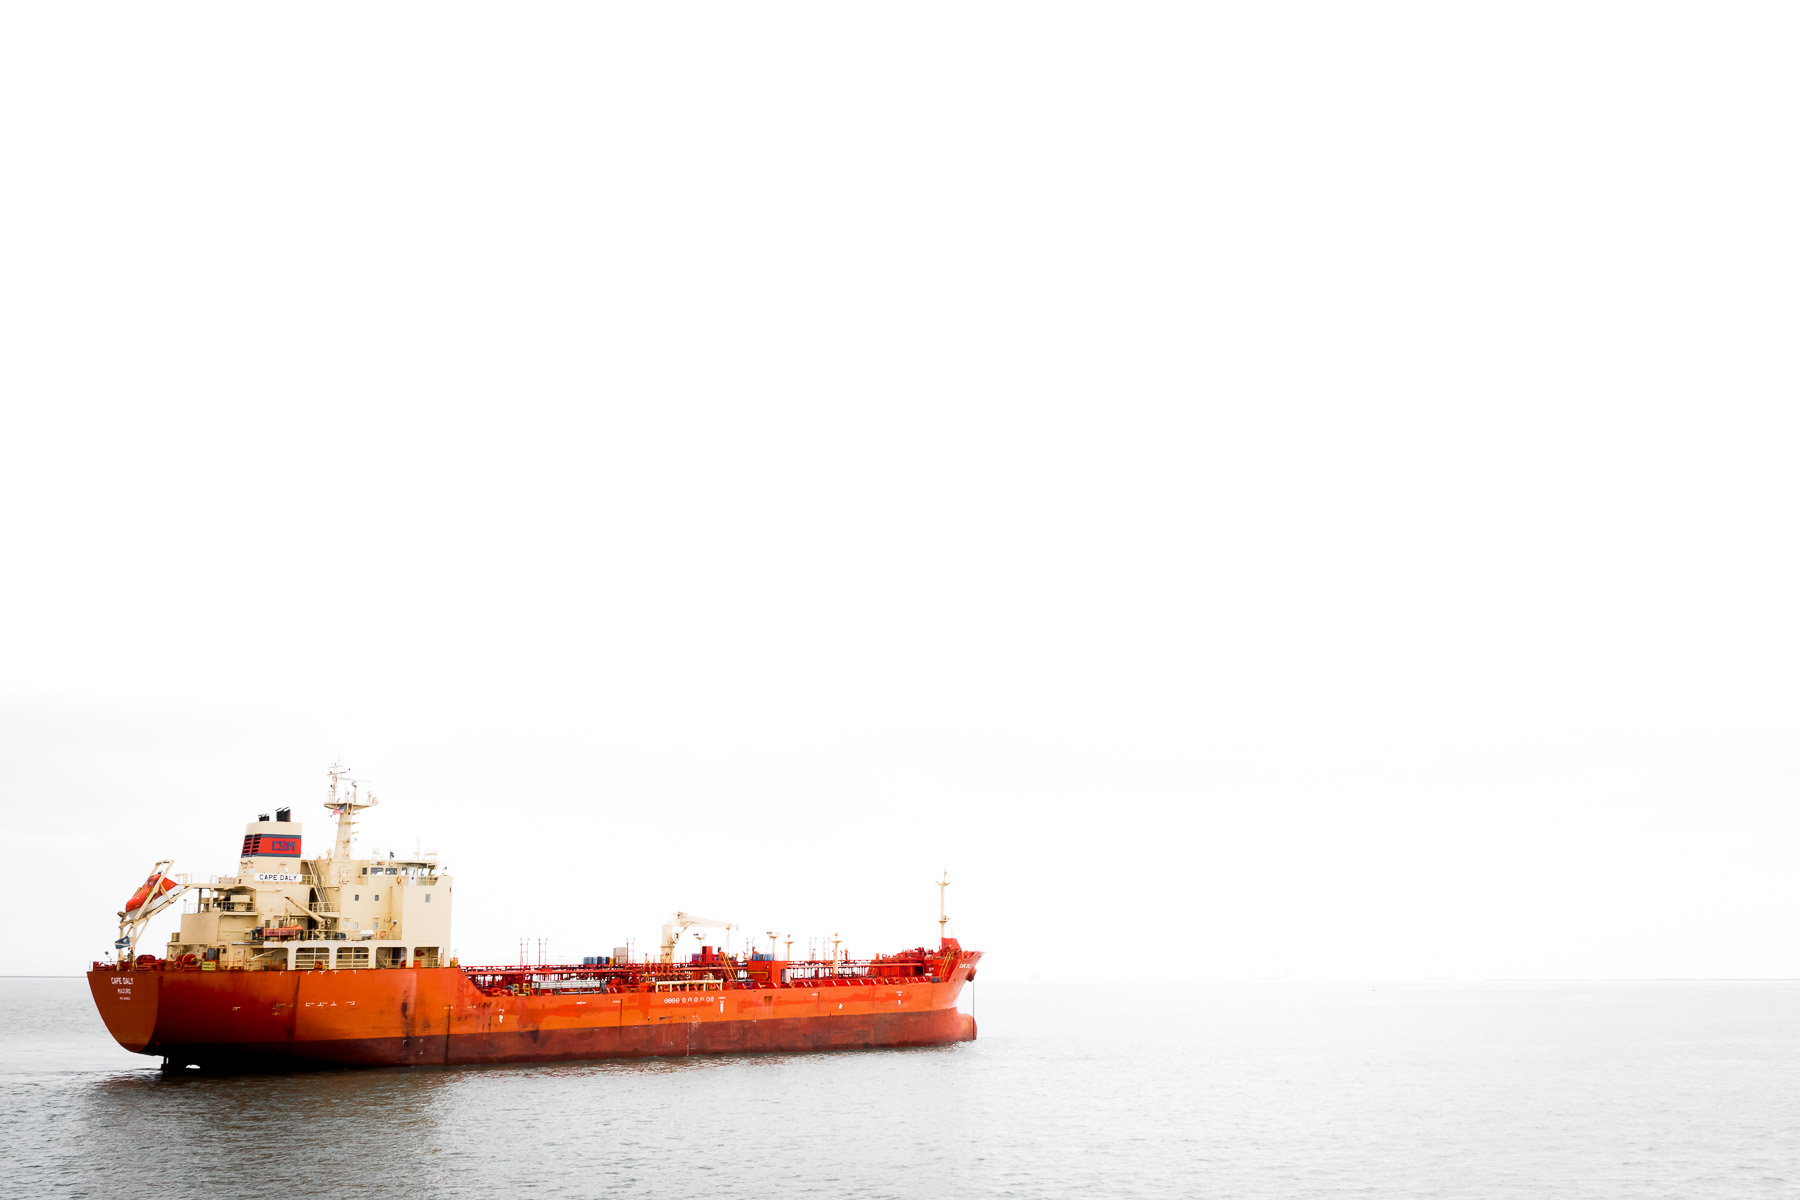 The chemical tanker Cape Daly, anchored at Bolivar Roads off the coast of Galveston, Texas.